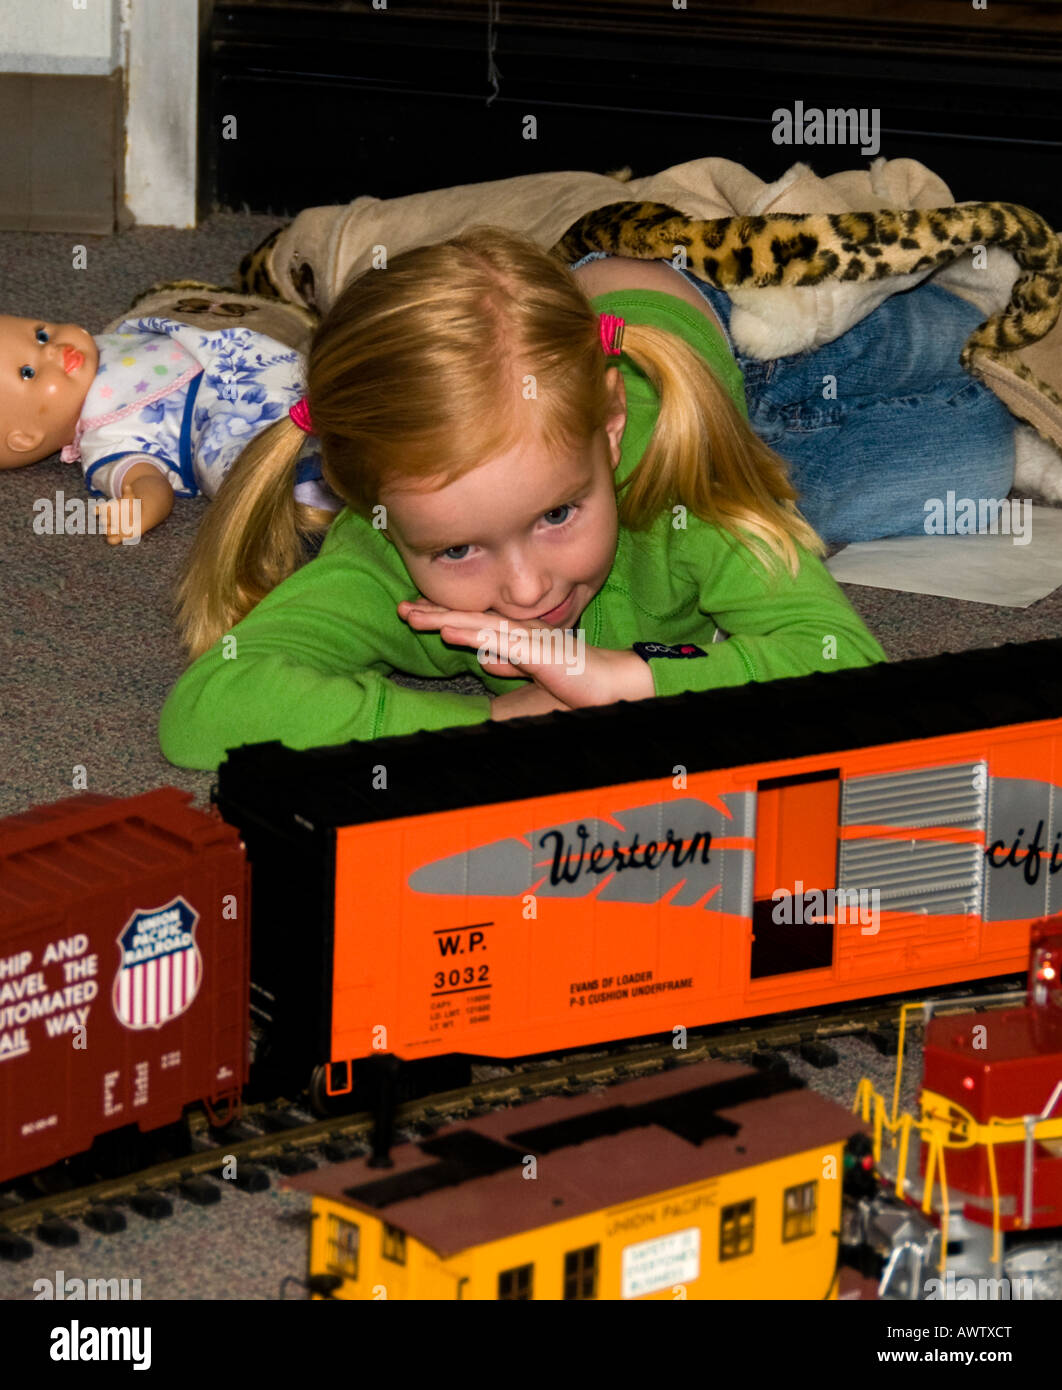 A young girl watched a miniature train run on a track at a train show Stock Photo